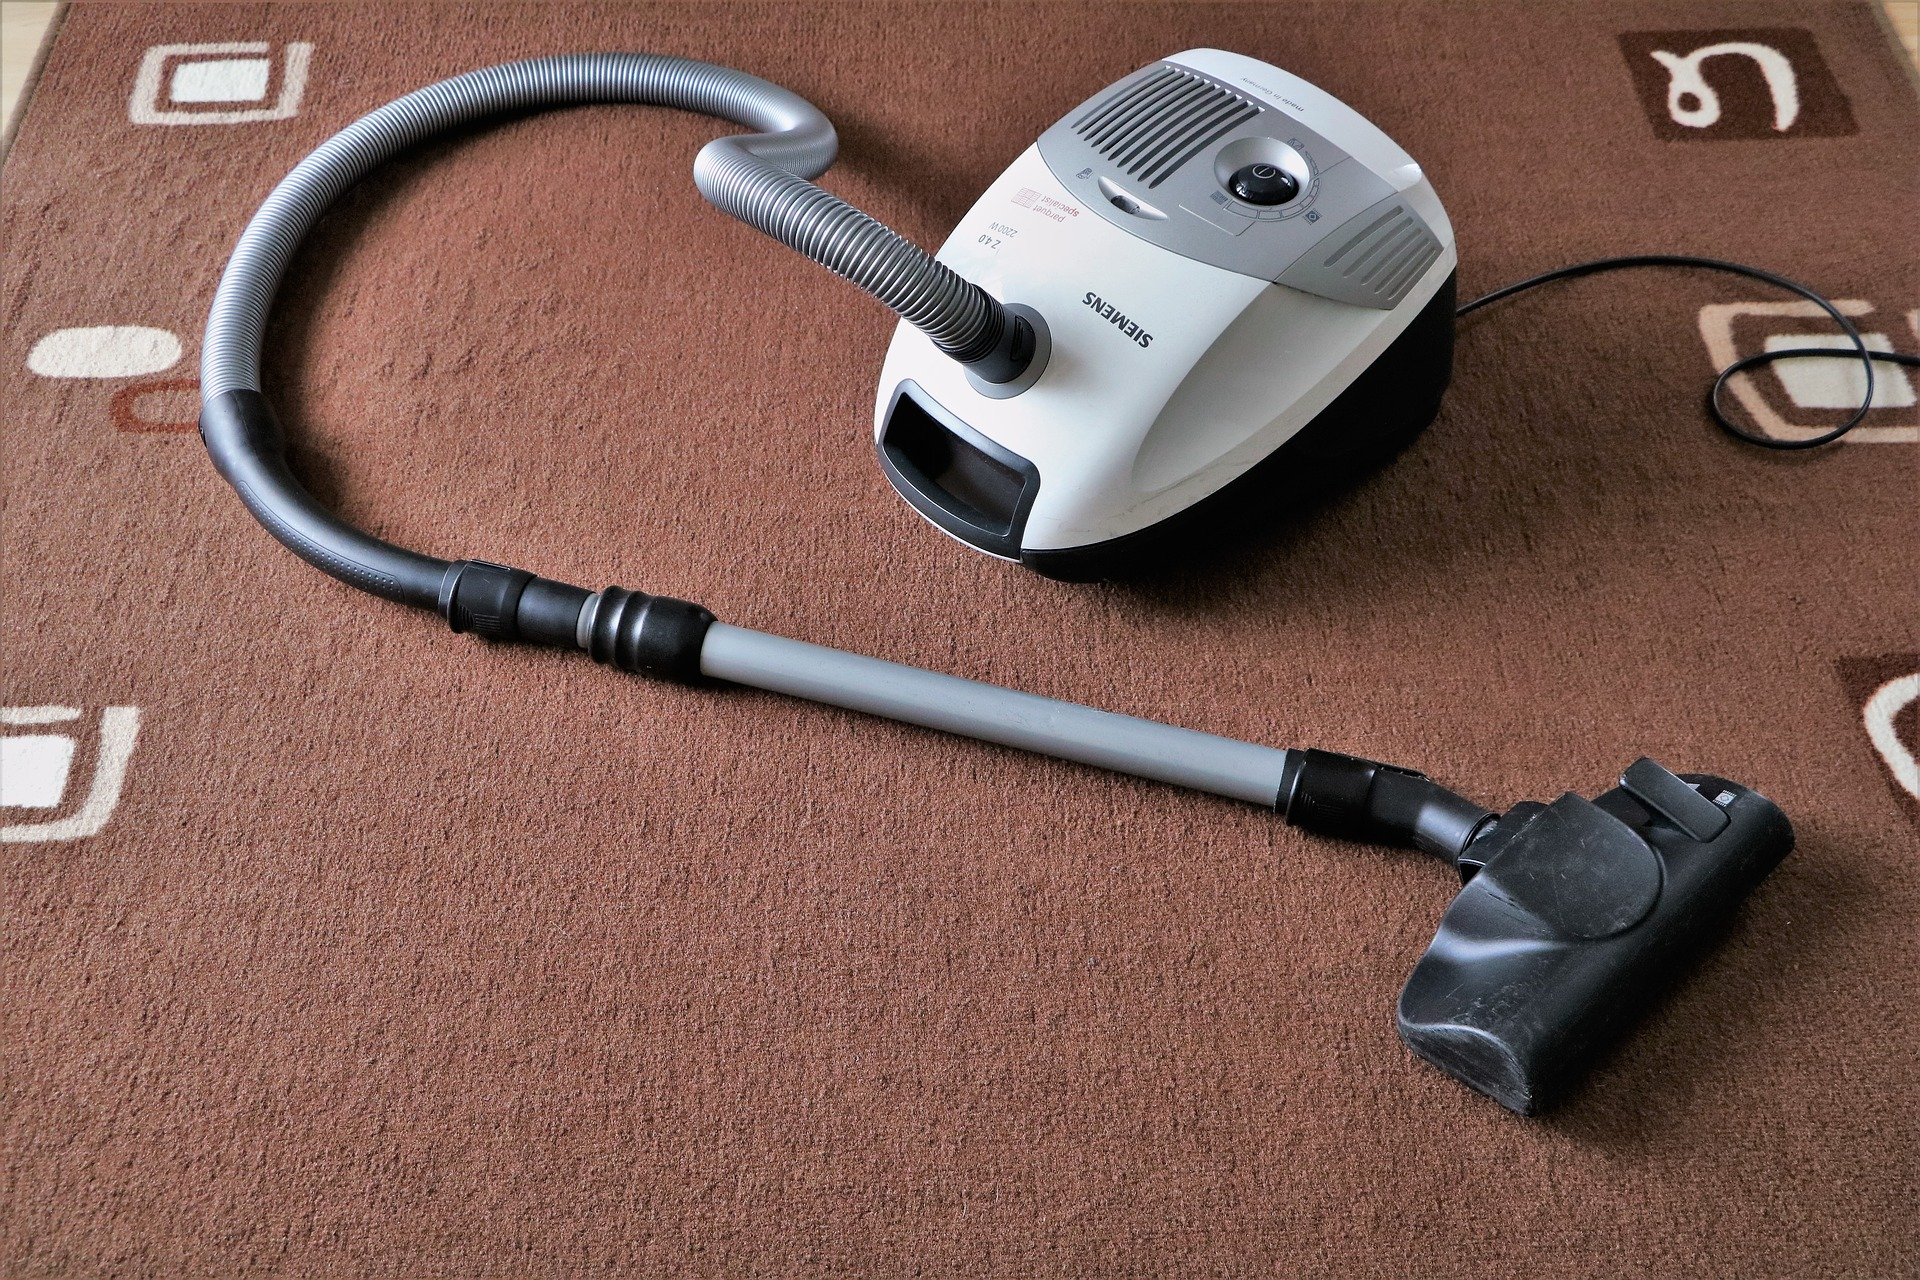 Read more about the article Save Your Carpet With These Great Carpet Cleaning Tips